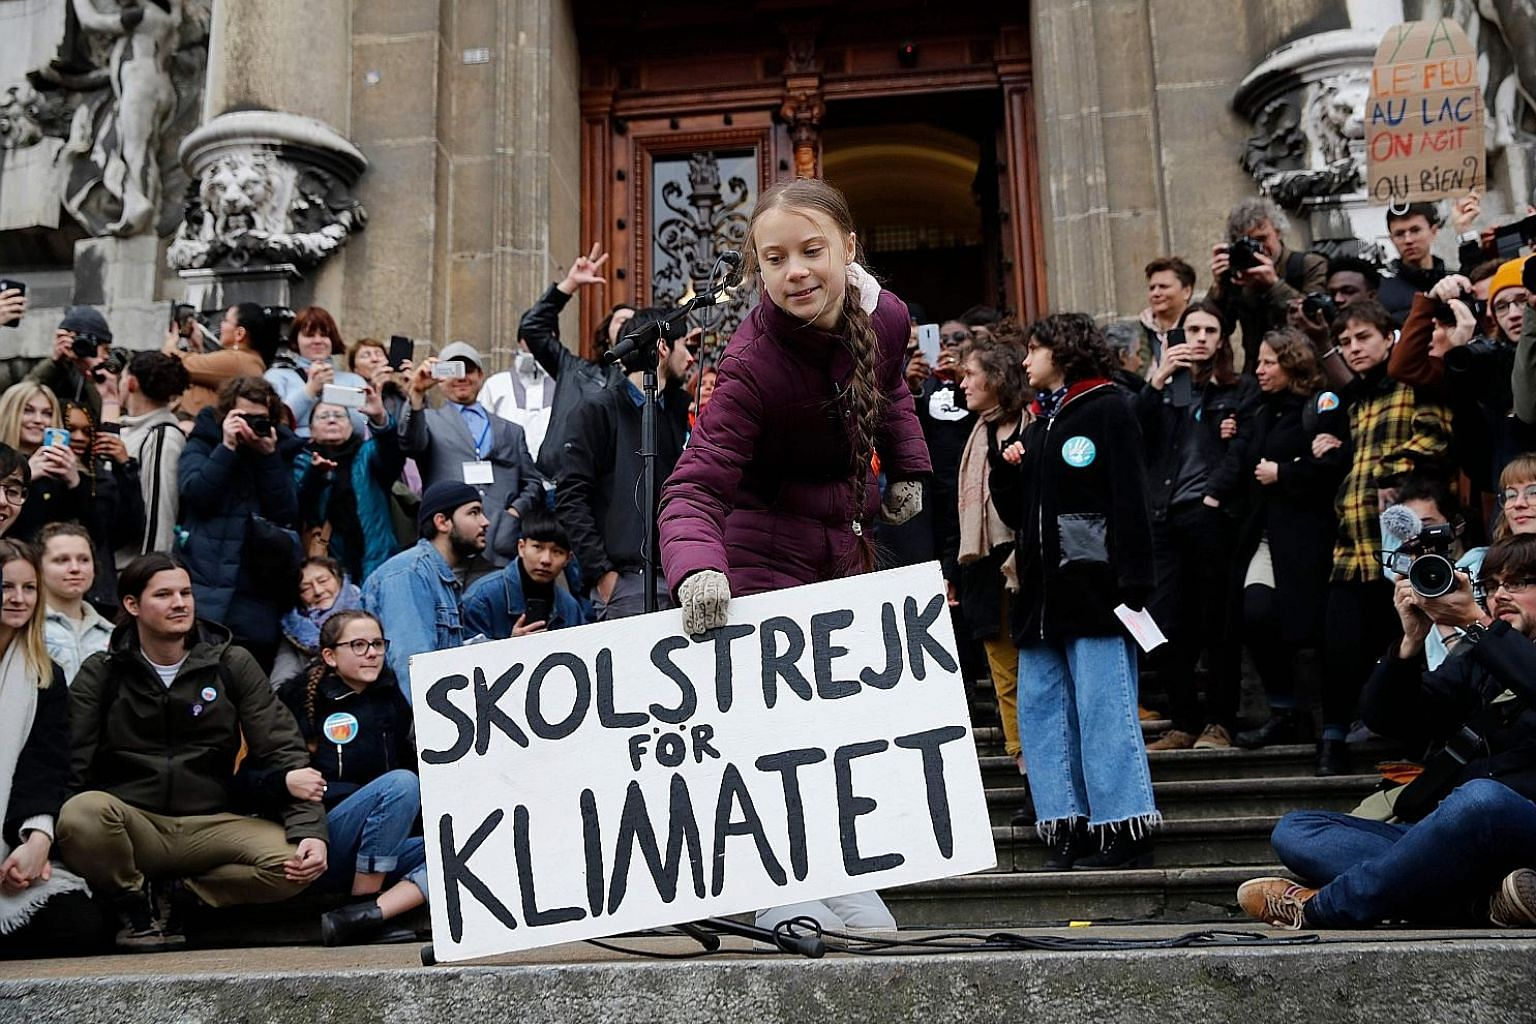 """Greta Thunberg holding a placard that says """"School strike for climate"""" during a rally in Lausanne, Switzerland, last Friday. The Swedish climate campaigner joined several thousand protesters in the Swiss city days before the start of the Davos summit"""